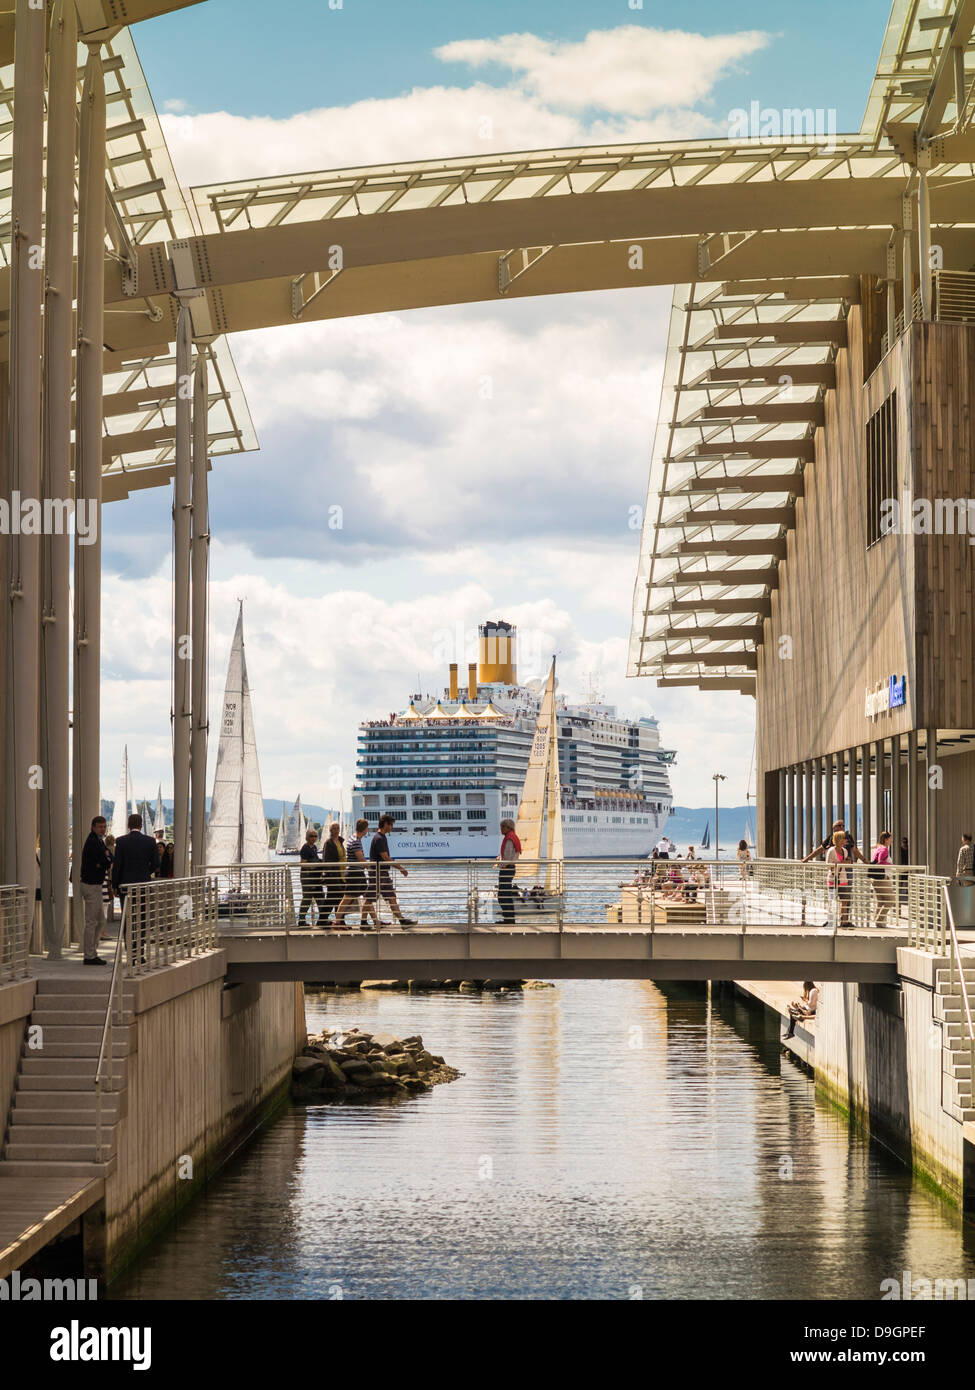 Oslo Harbor and cruise ship with Astrup Fearnley Museet Museum of Modern Art (R), Norway, Europe - Stock Image